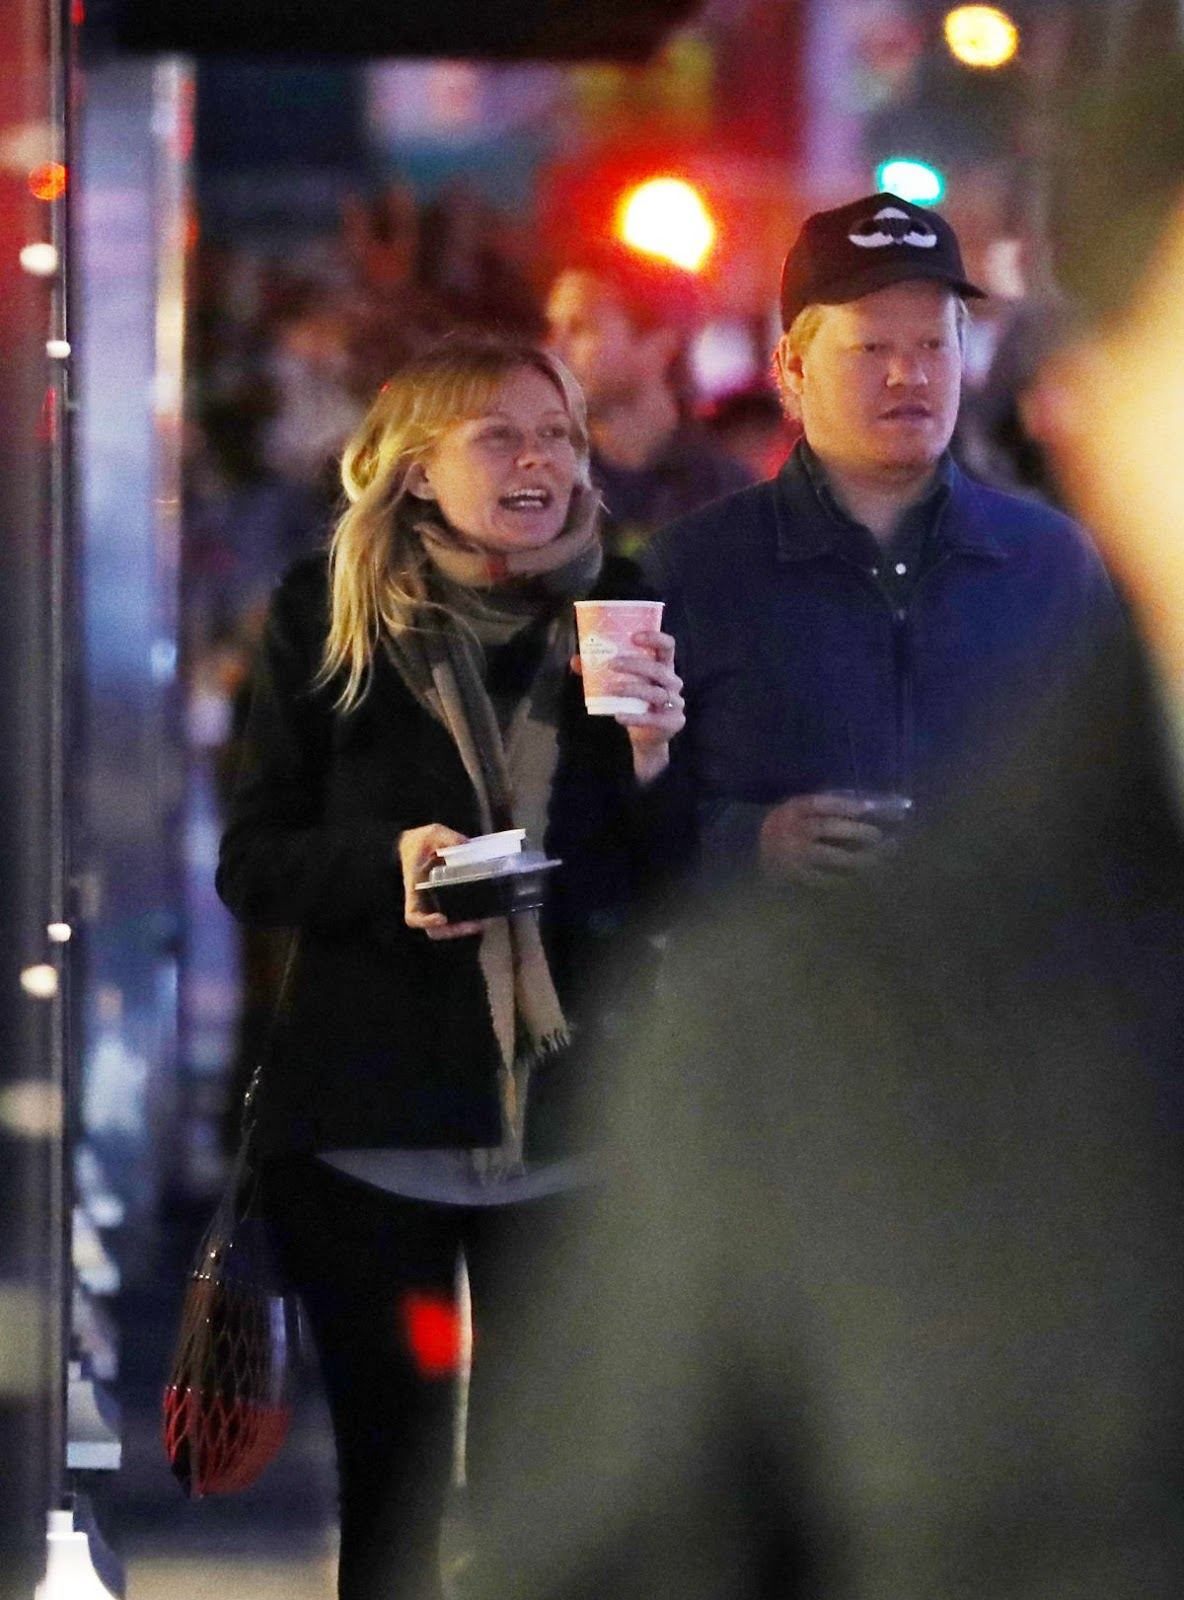 Photos of Kirsten Dunst enjoying coffee with Jesse Plemons Night Out in New York